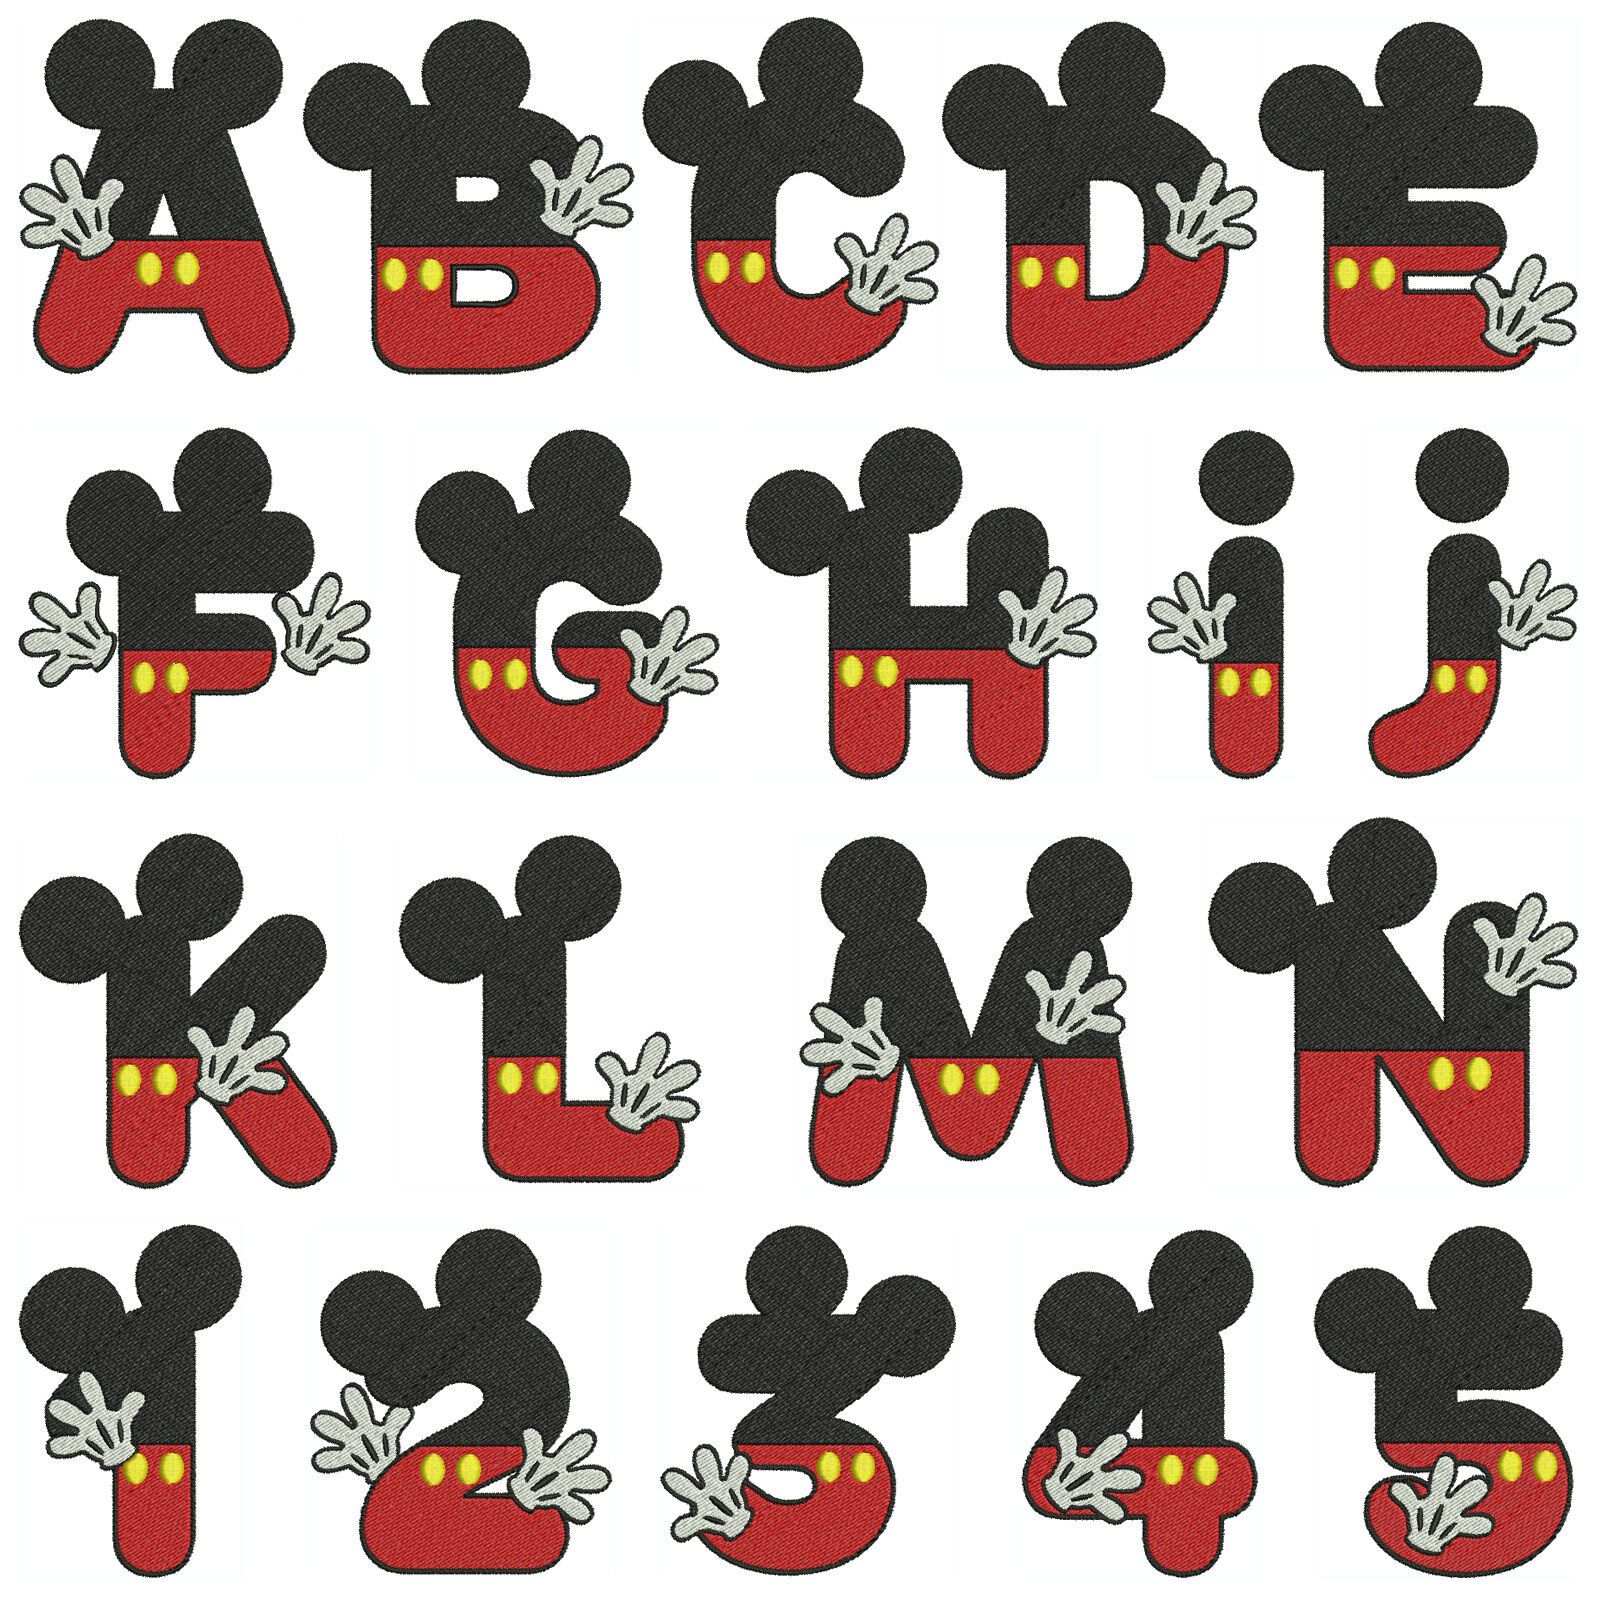 Mickey Alphabet Amp Numbers Machine Embroidery Patterns 36